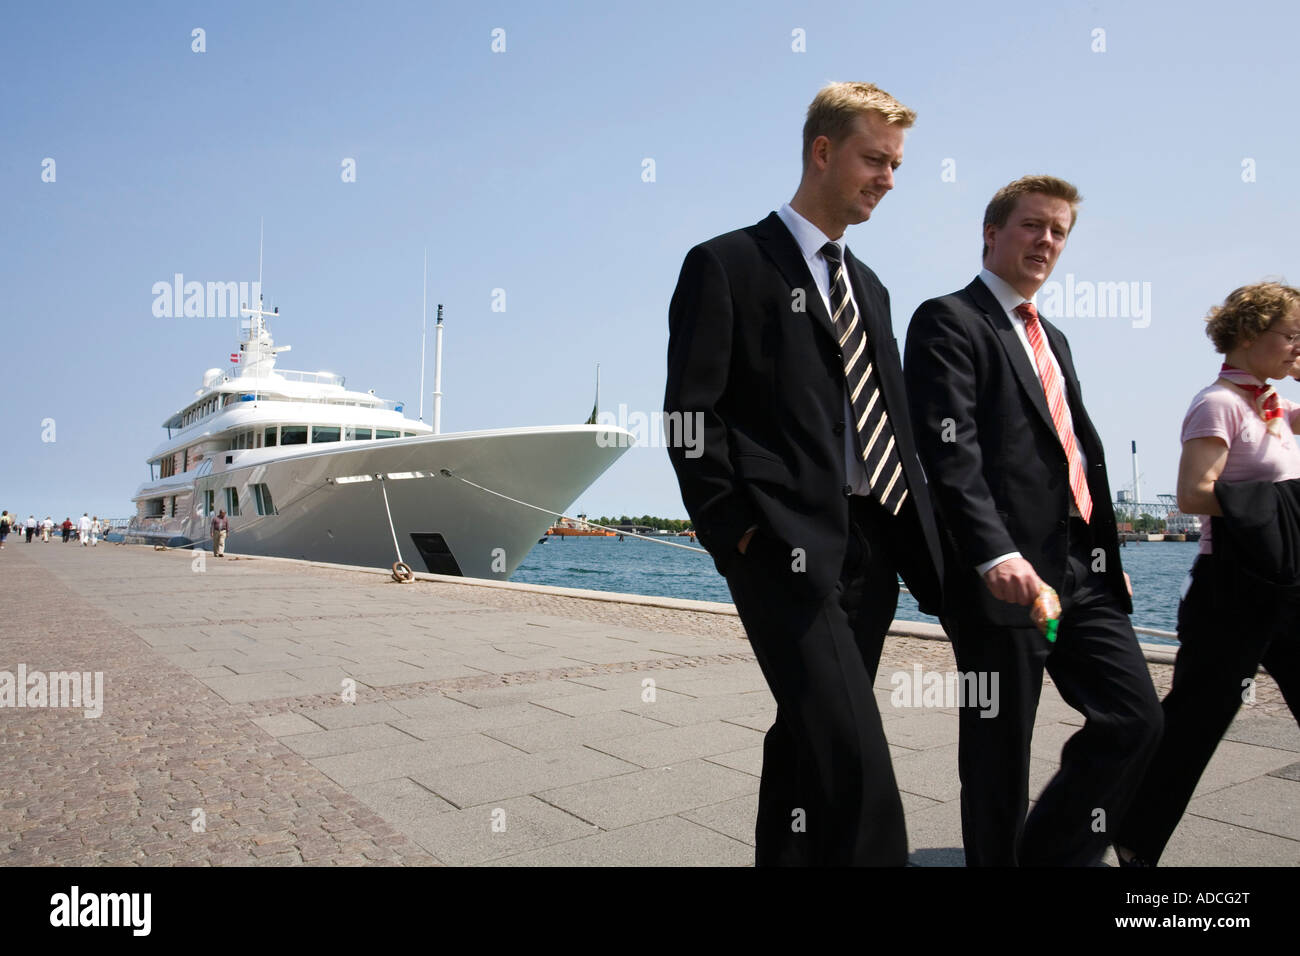 Business people walk past a luxury yacht moored at Copenhagen harbour - Stock Image